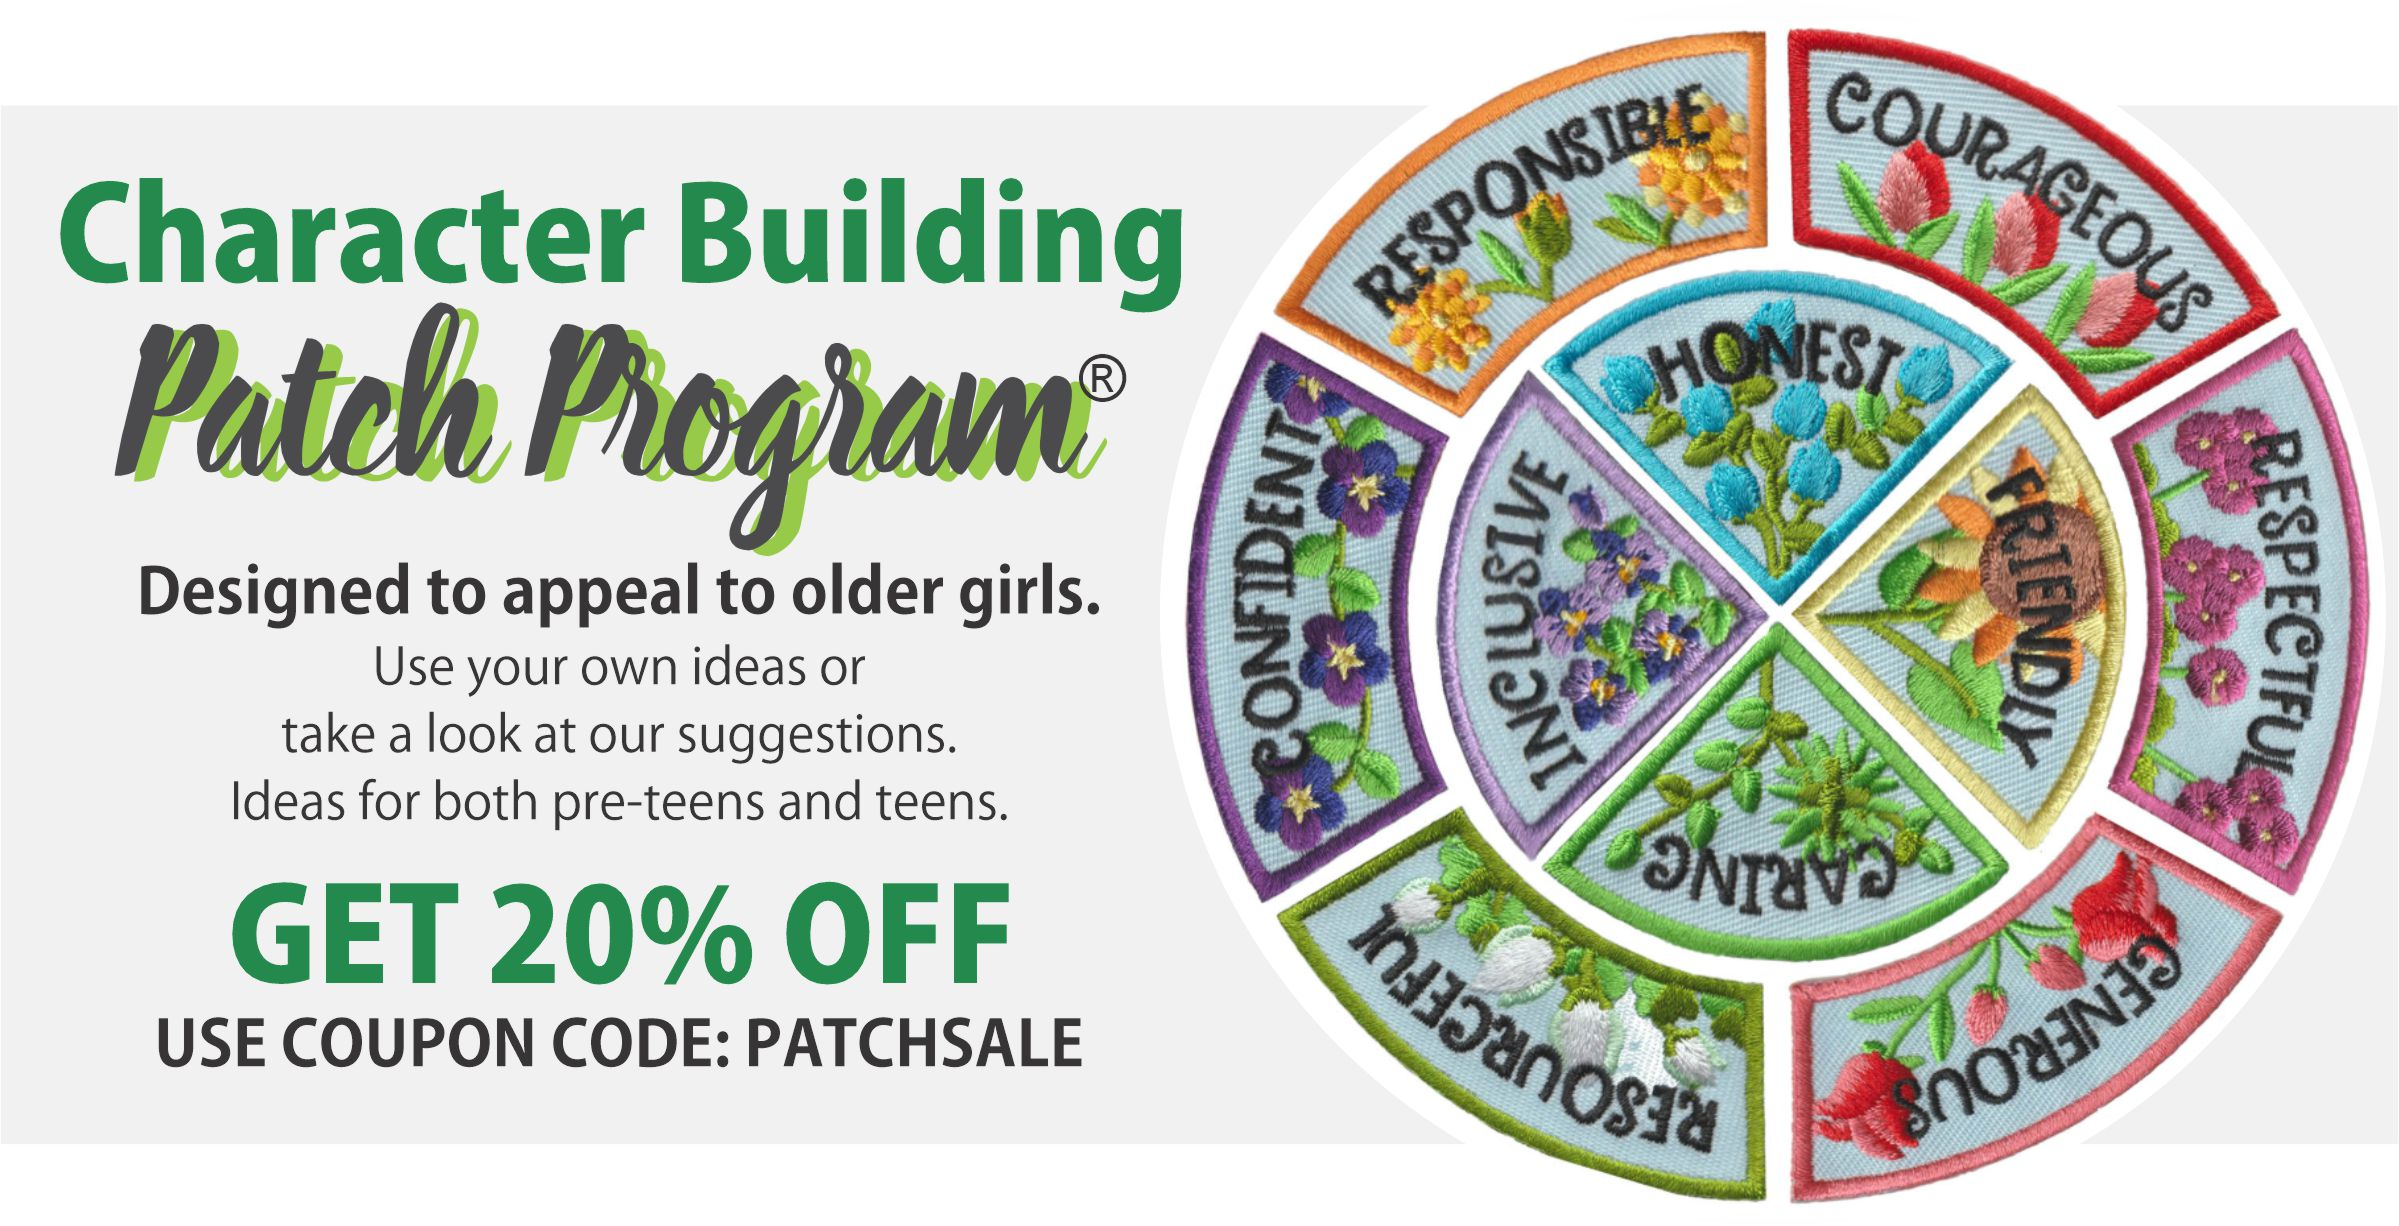 Girl Scout Character Building patch program group